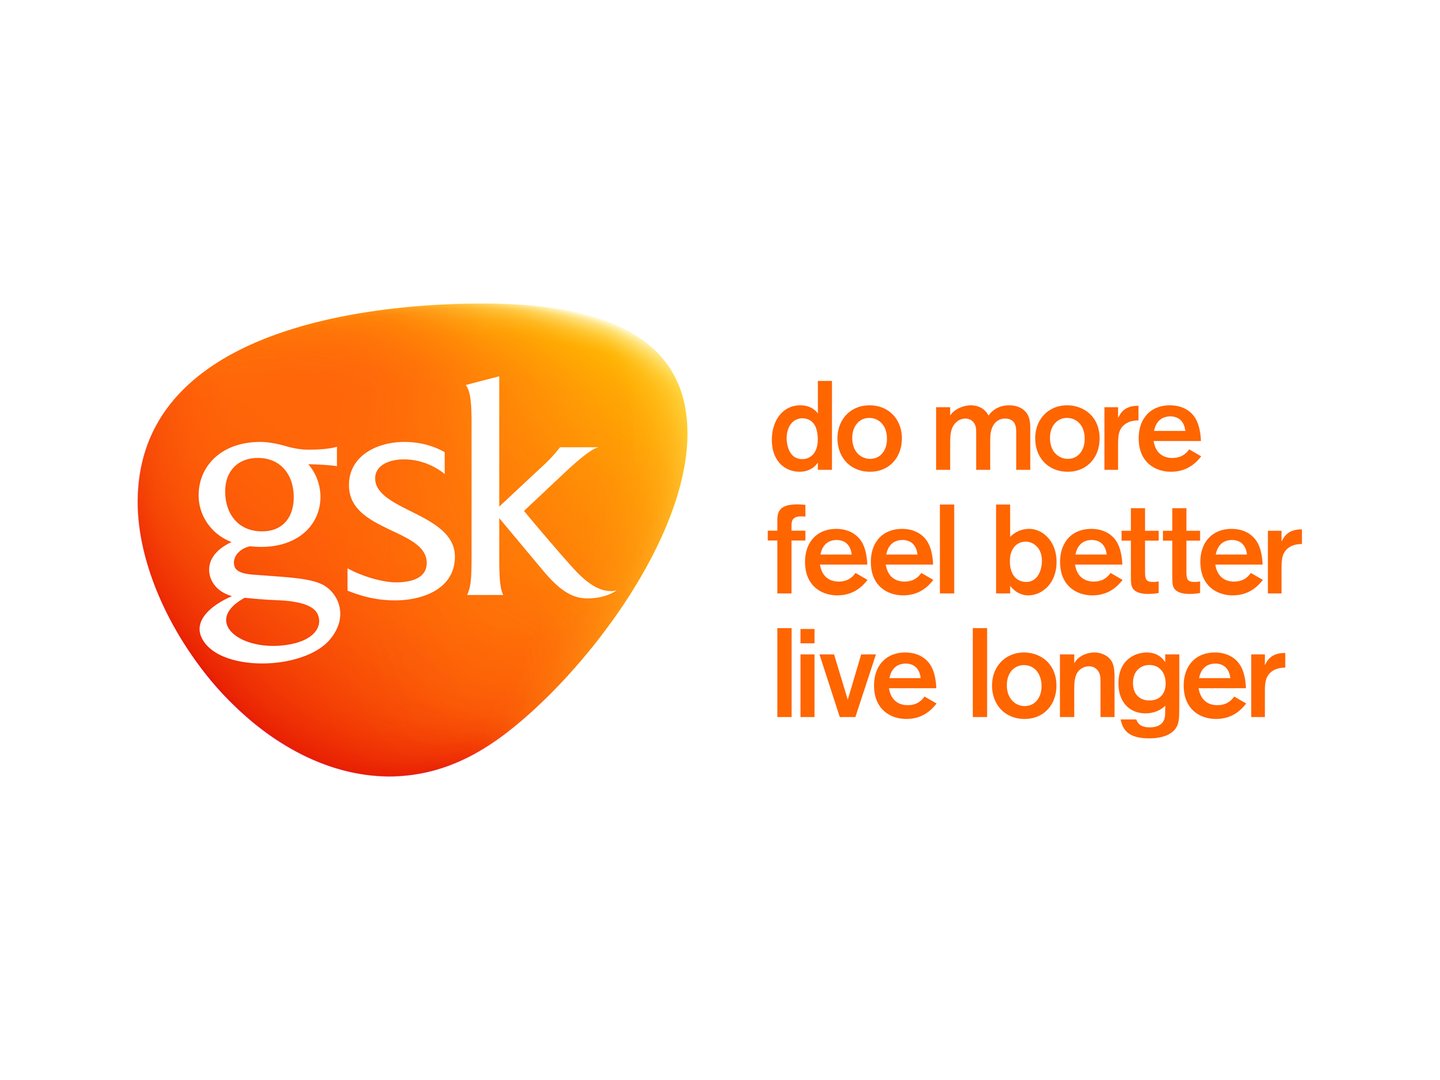 GSK-logo-and-slogan-2014.png